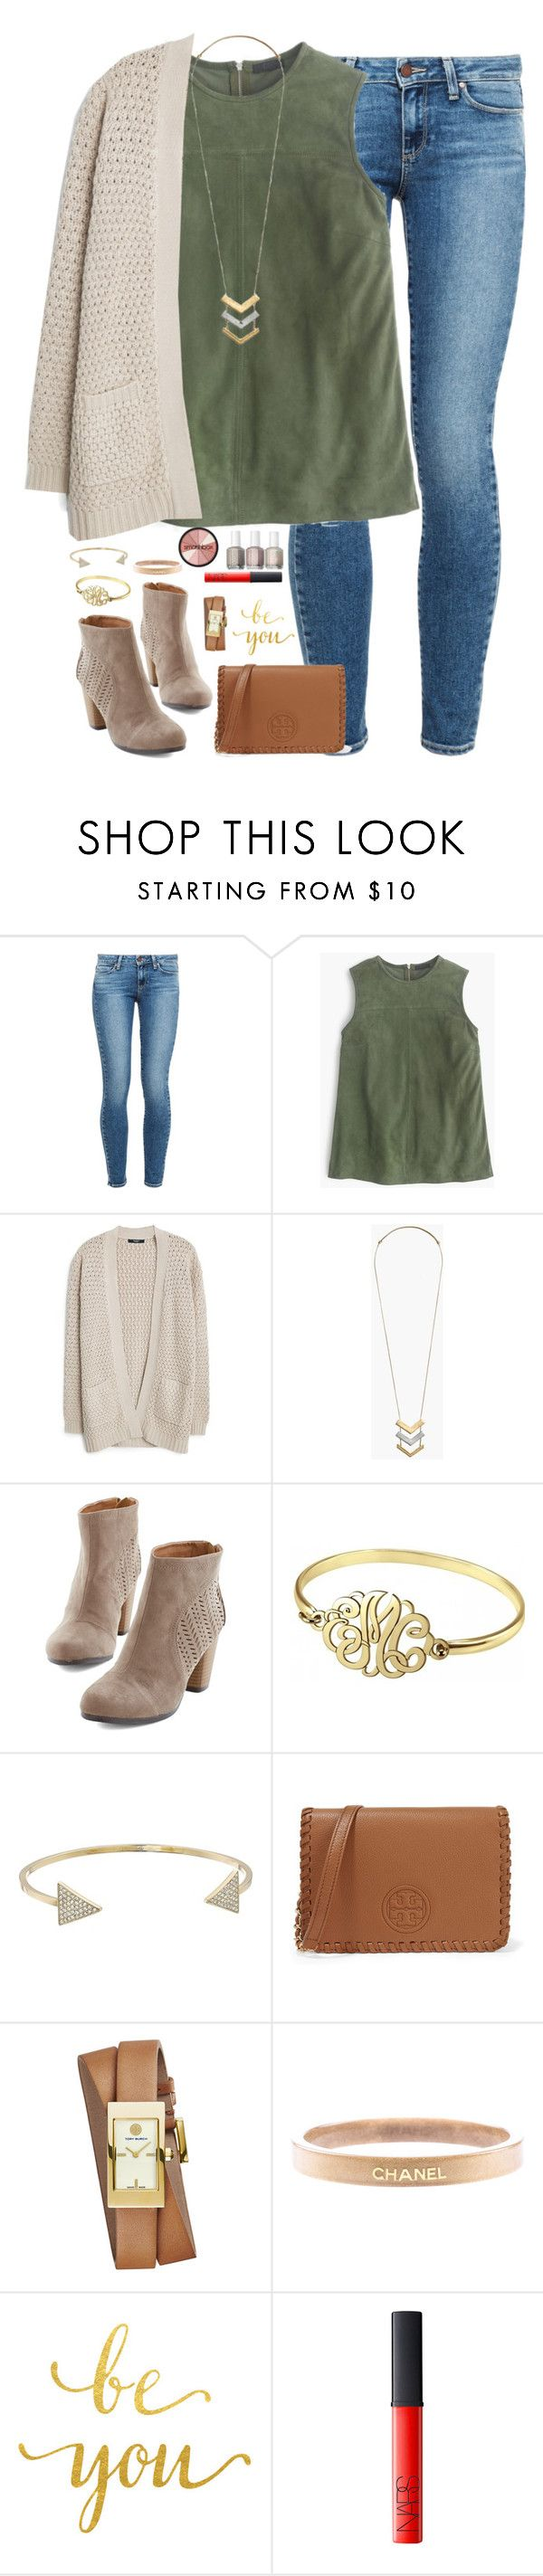 """sometimes you can't explain what you see in a a person. it's just the way they take you to a place that no one else can."" by kaley-ii ❤ liked on Polyvore featuring Paige Denim, J.Crew, MANGO, Madewell, Alison & Ivy, Michael Kors, Tory Burch, Chanel, NARS Cosmetics and Smashbox"